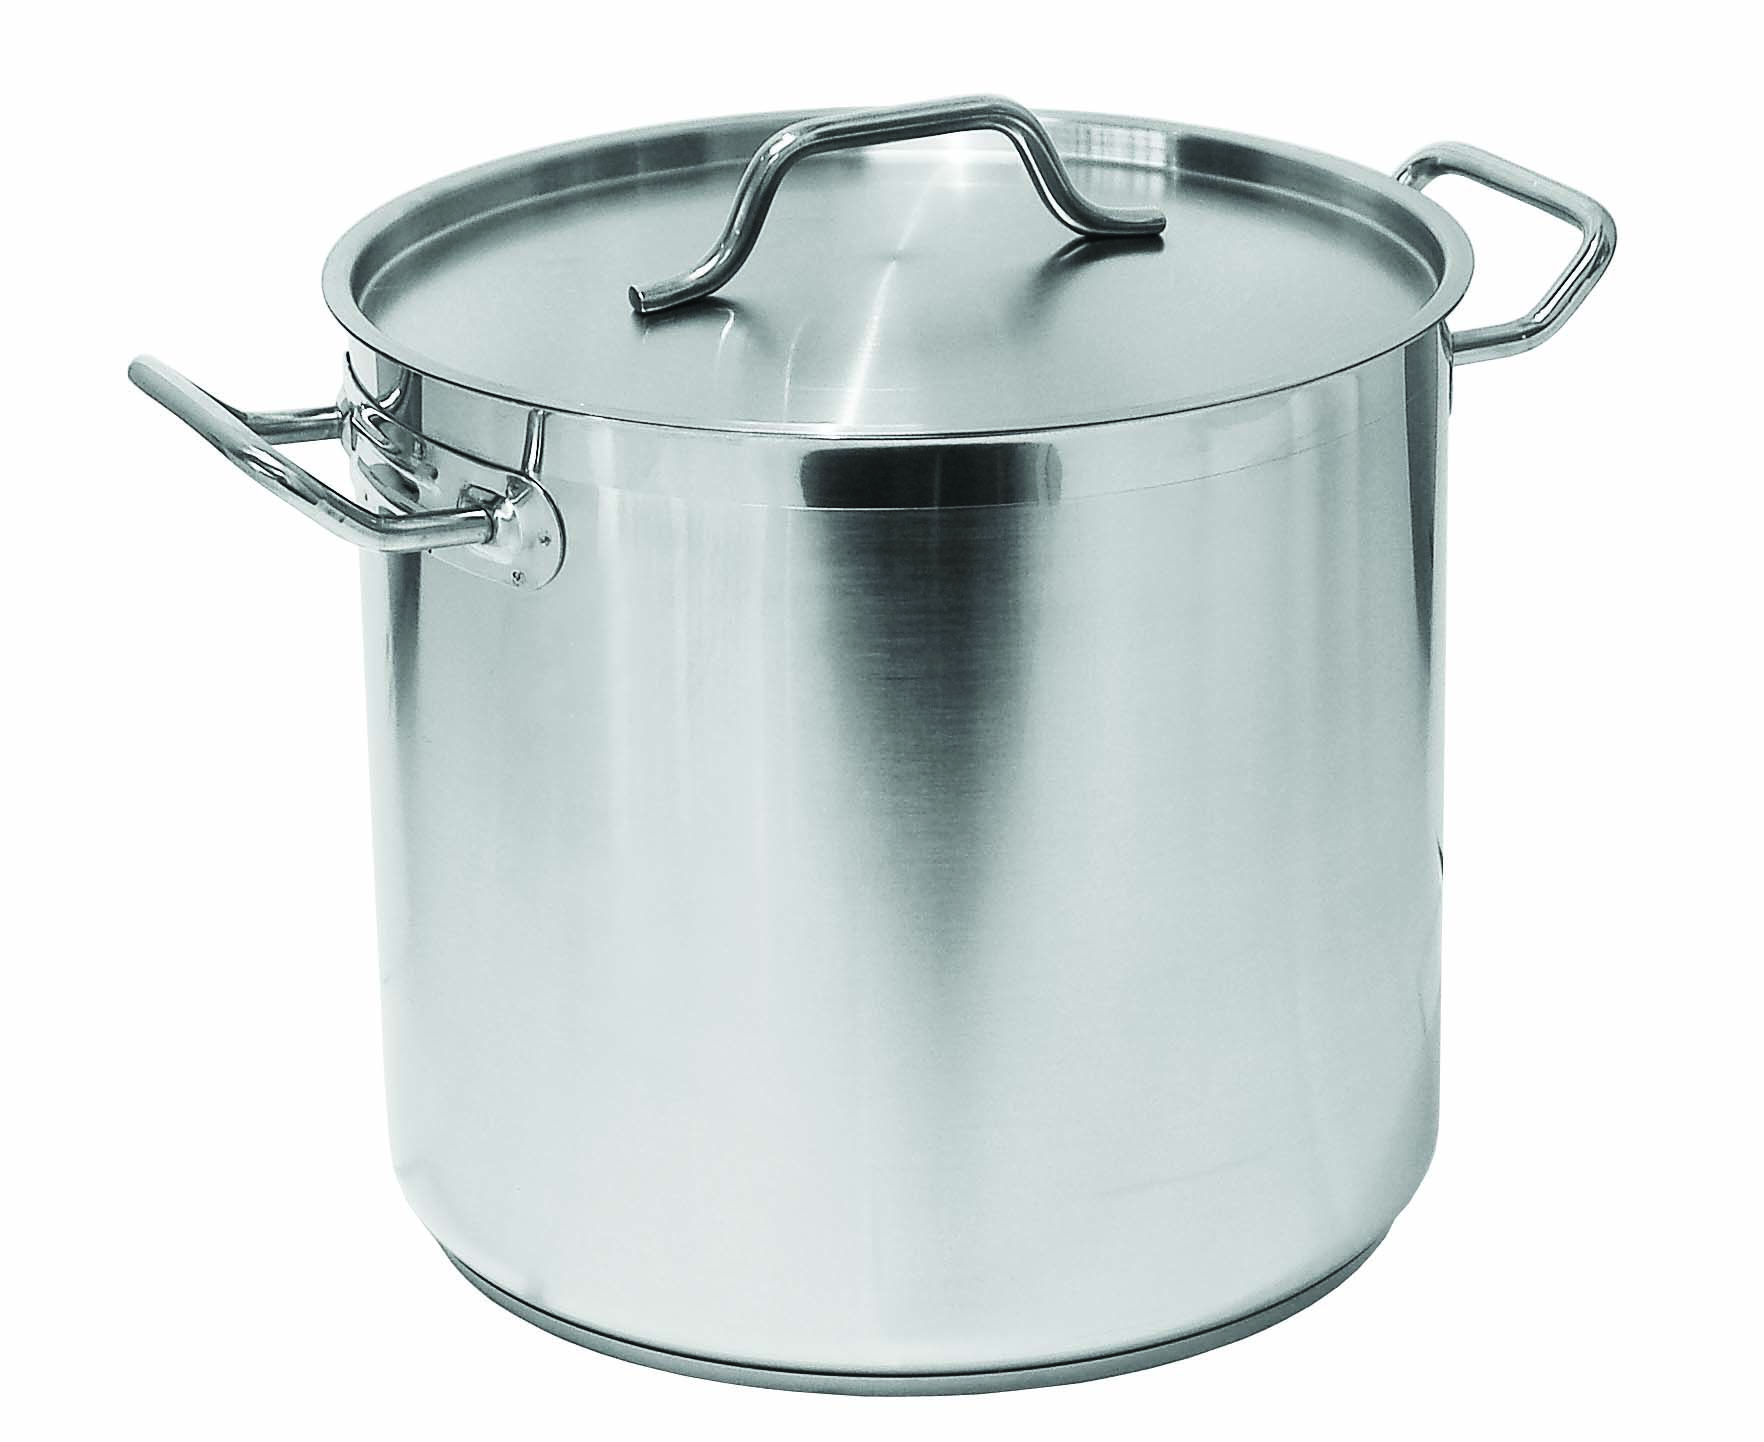 POT S/STEEL CASSEROLE (VALUE)- 6LT